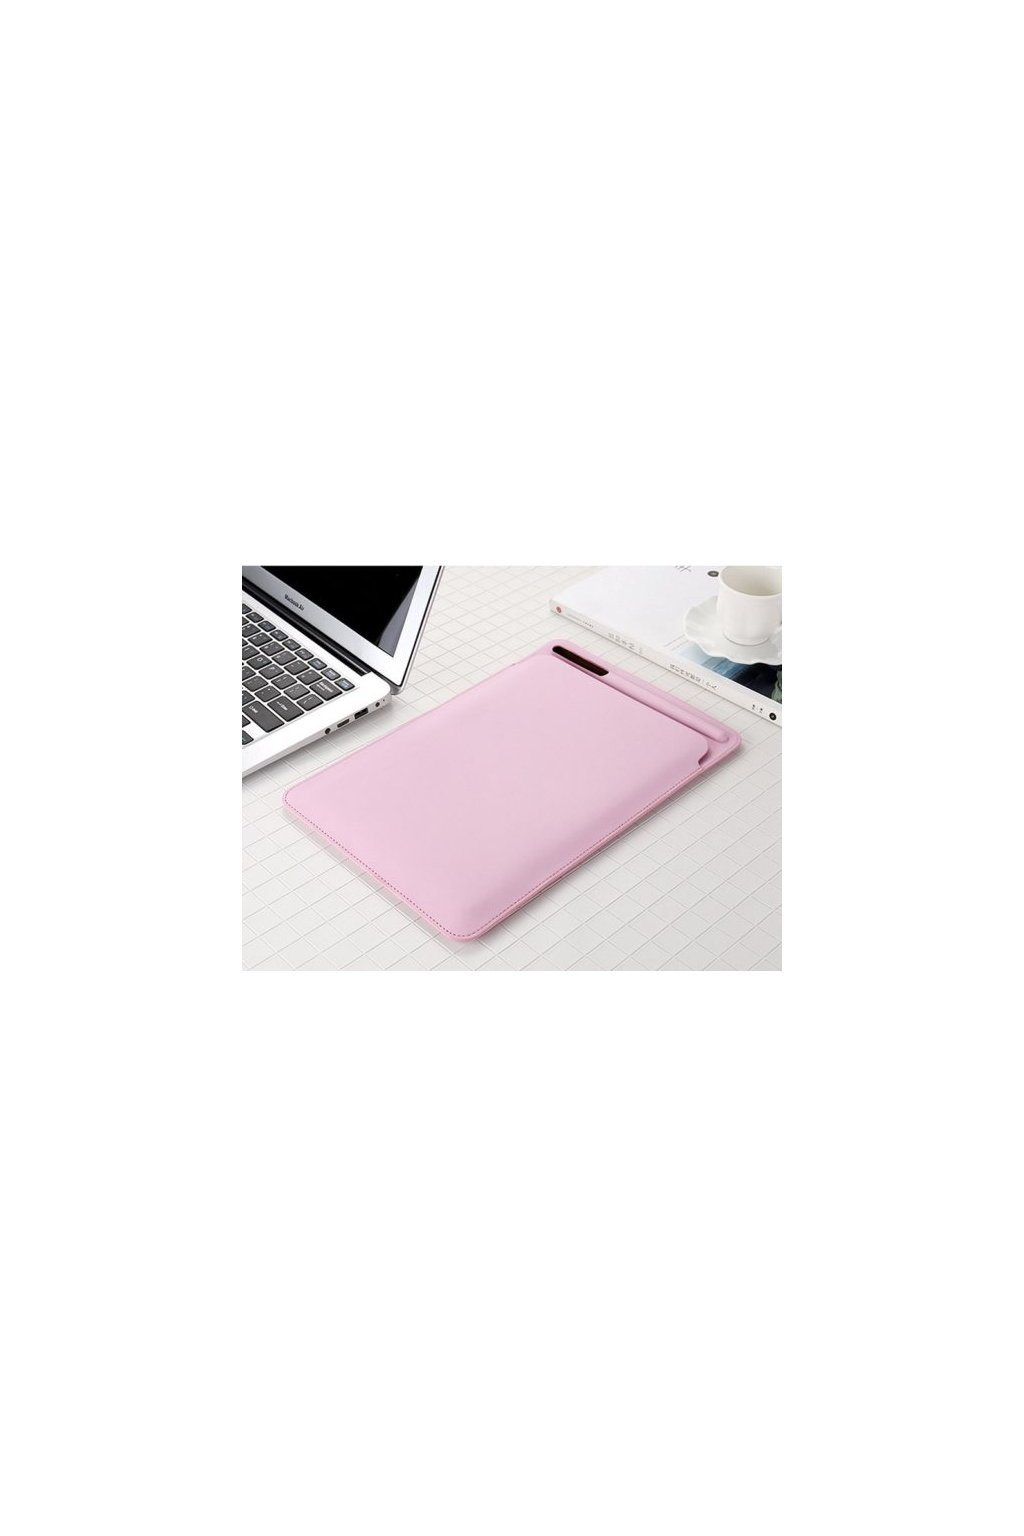 PopMart iPad Pro 10.5 Leather Sleeve fits also iPad 9.7 540x406